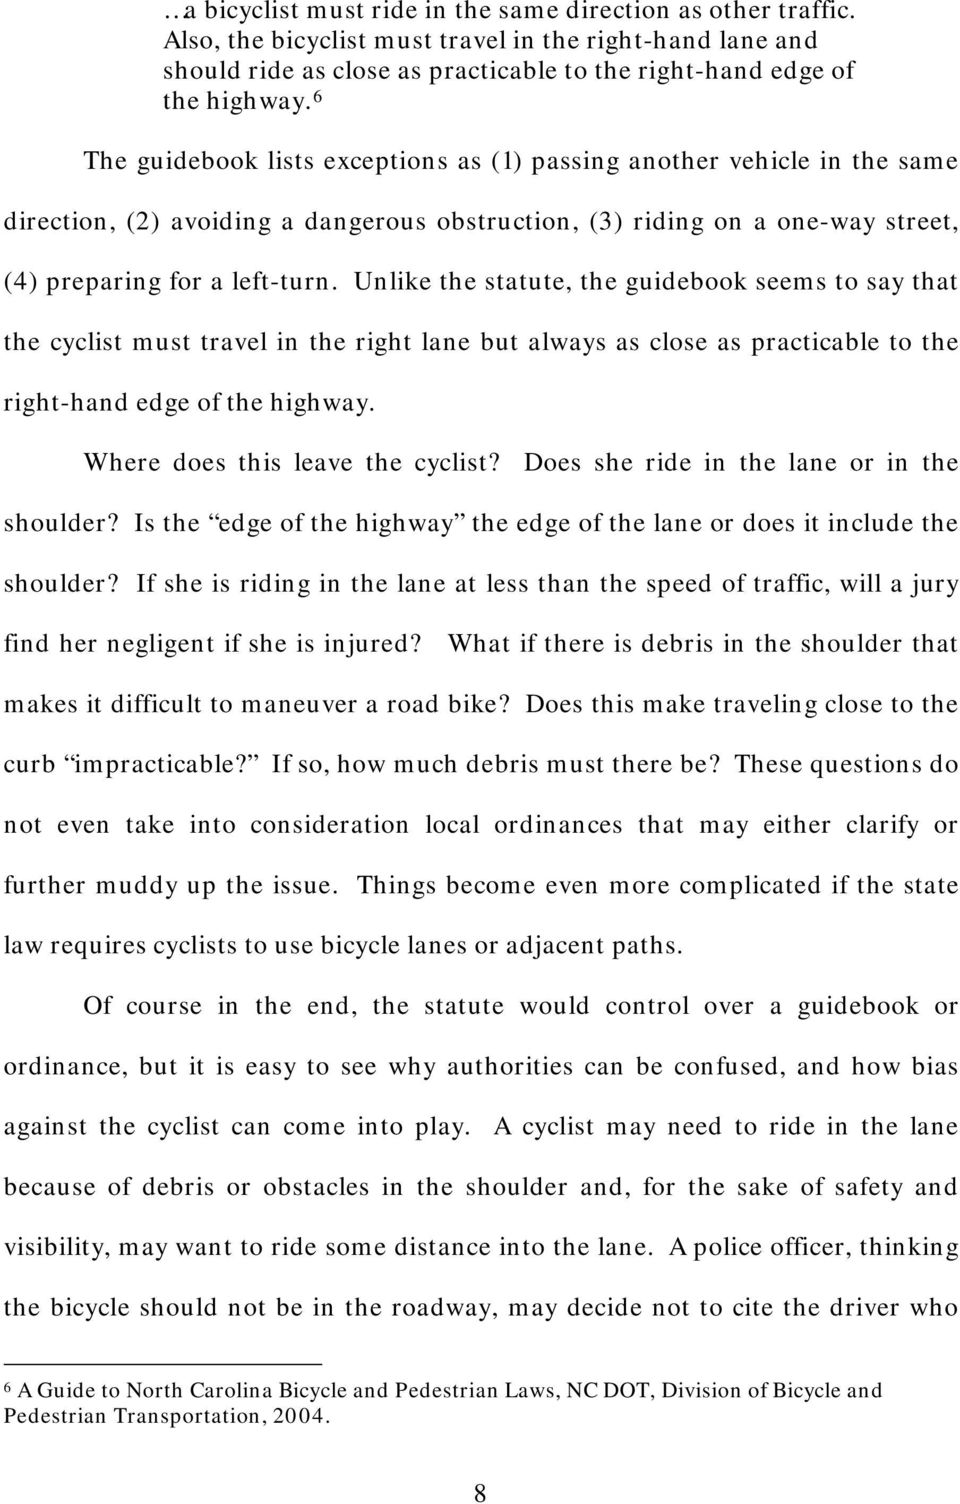 Unlike the statute, the guidebook seems to say that the cyclist must travel in the right lane but always as close as practicable to the right-hand edge of the highway.